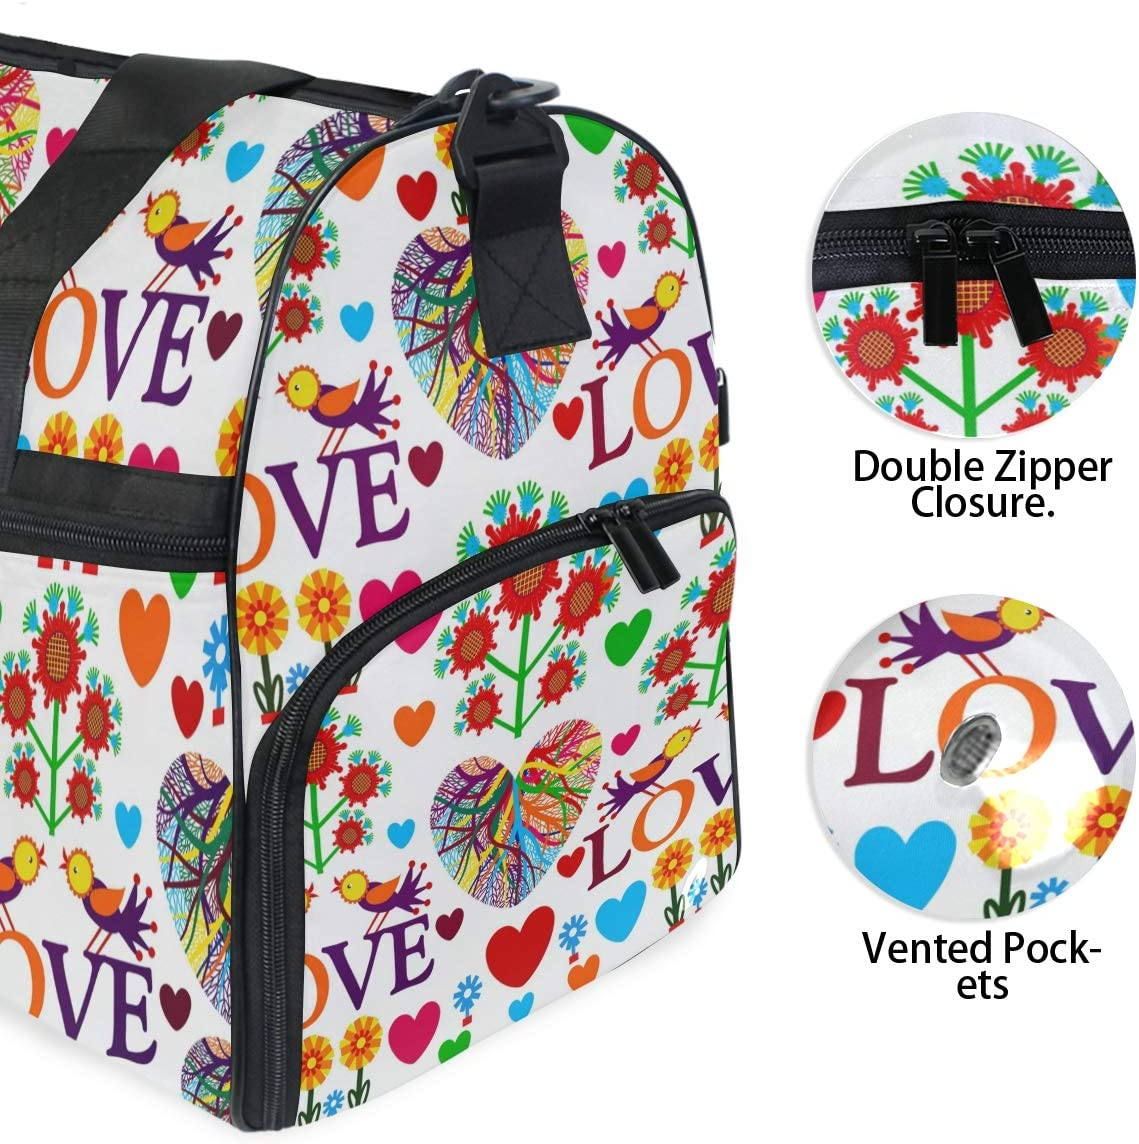 WIHVE Sports Gym Bag with Shoes Compartment Love Birds Flowers Travel Duffel Bag